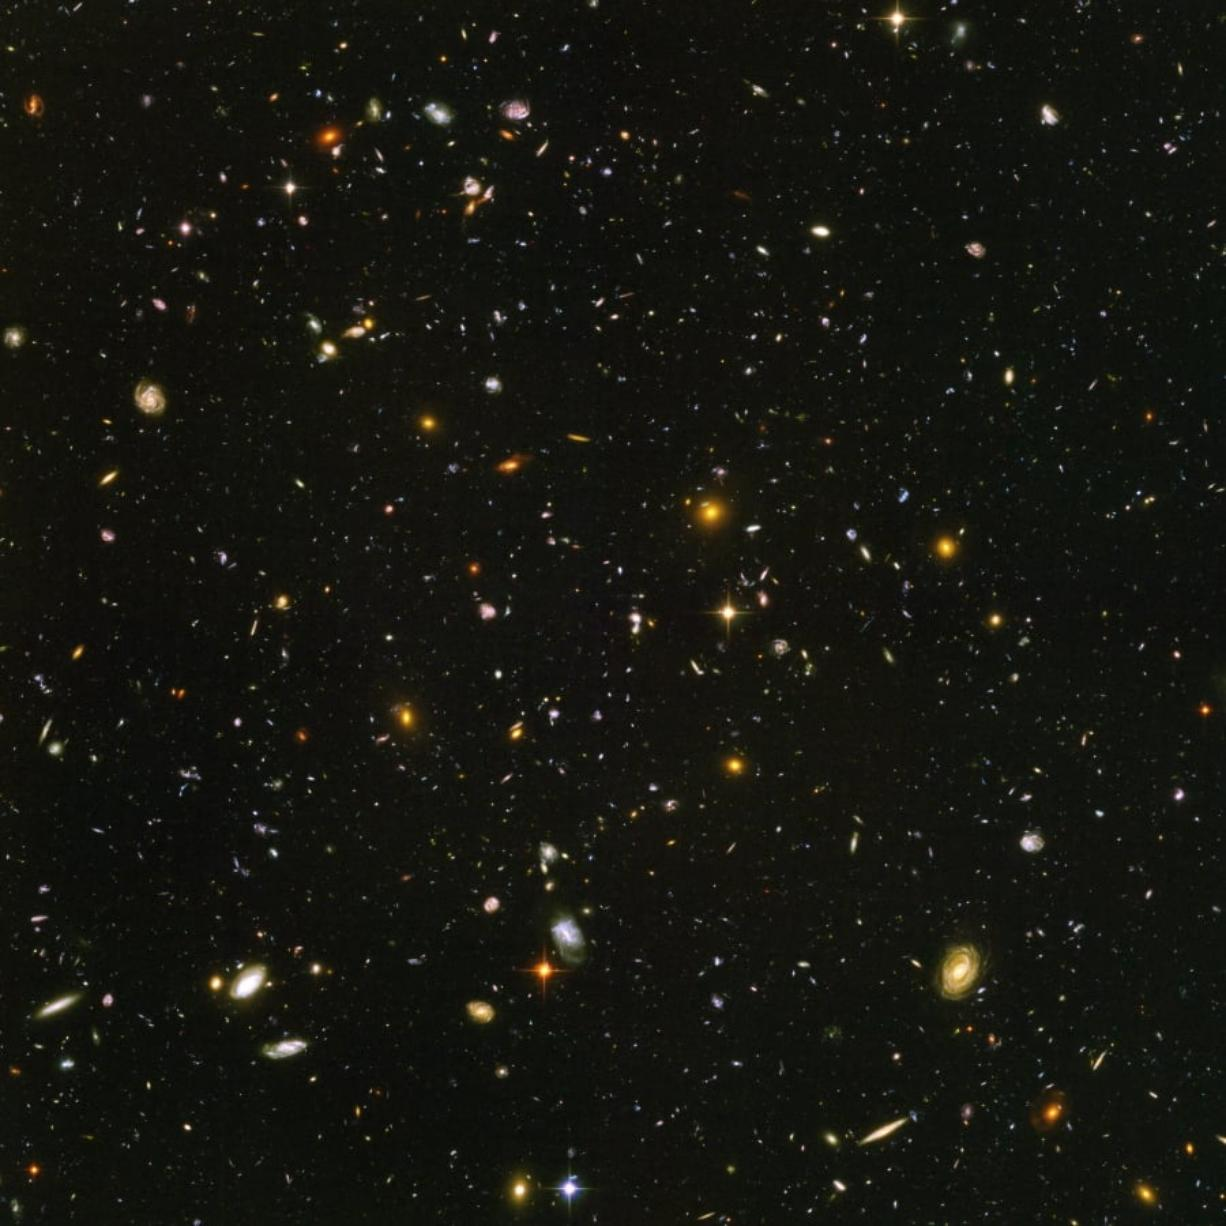 This image made from a composite of September 2003 to January 2004 photos captured by the NASA/ESA Hubble Space Telescope shows nearly 10,000 galaxies in the deepest visible-light image of the cosmos, cutting across billions of light-years. NASA, ESA, S.